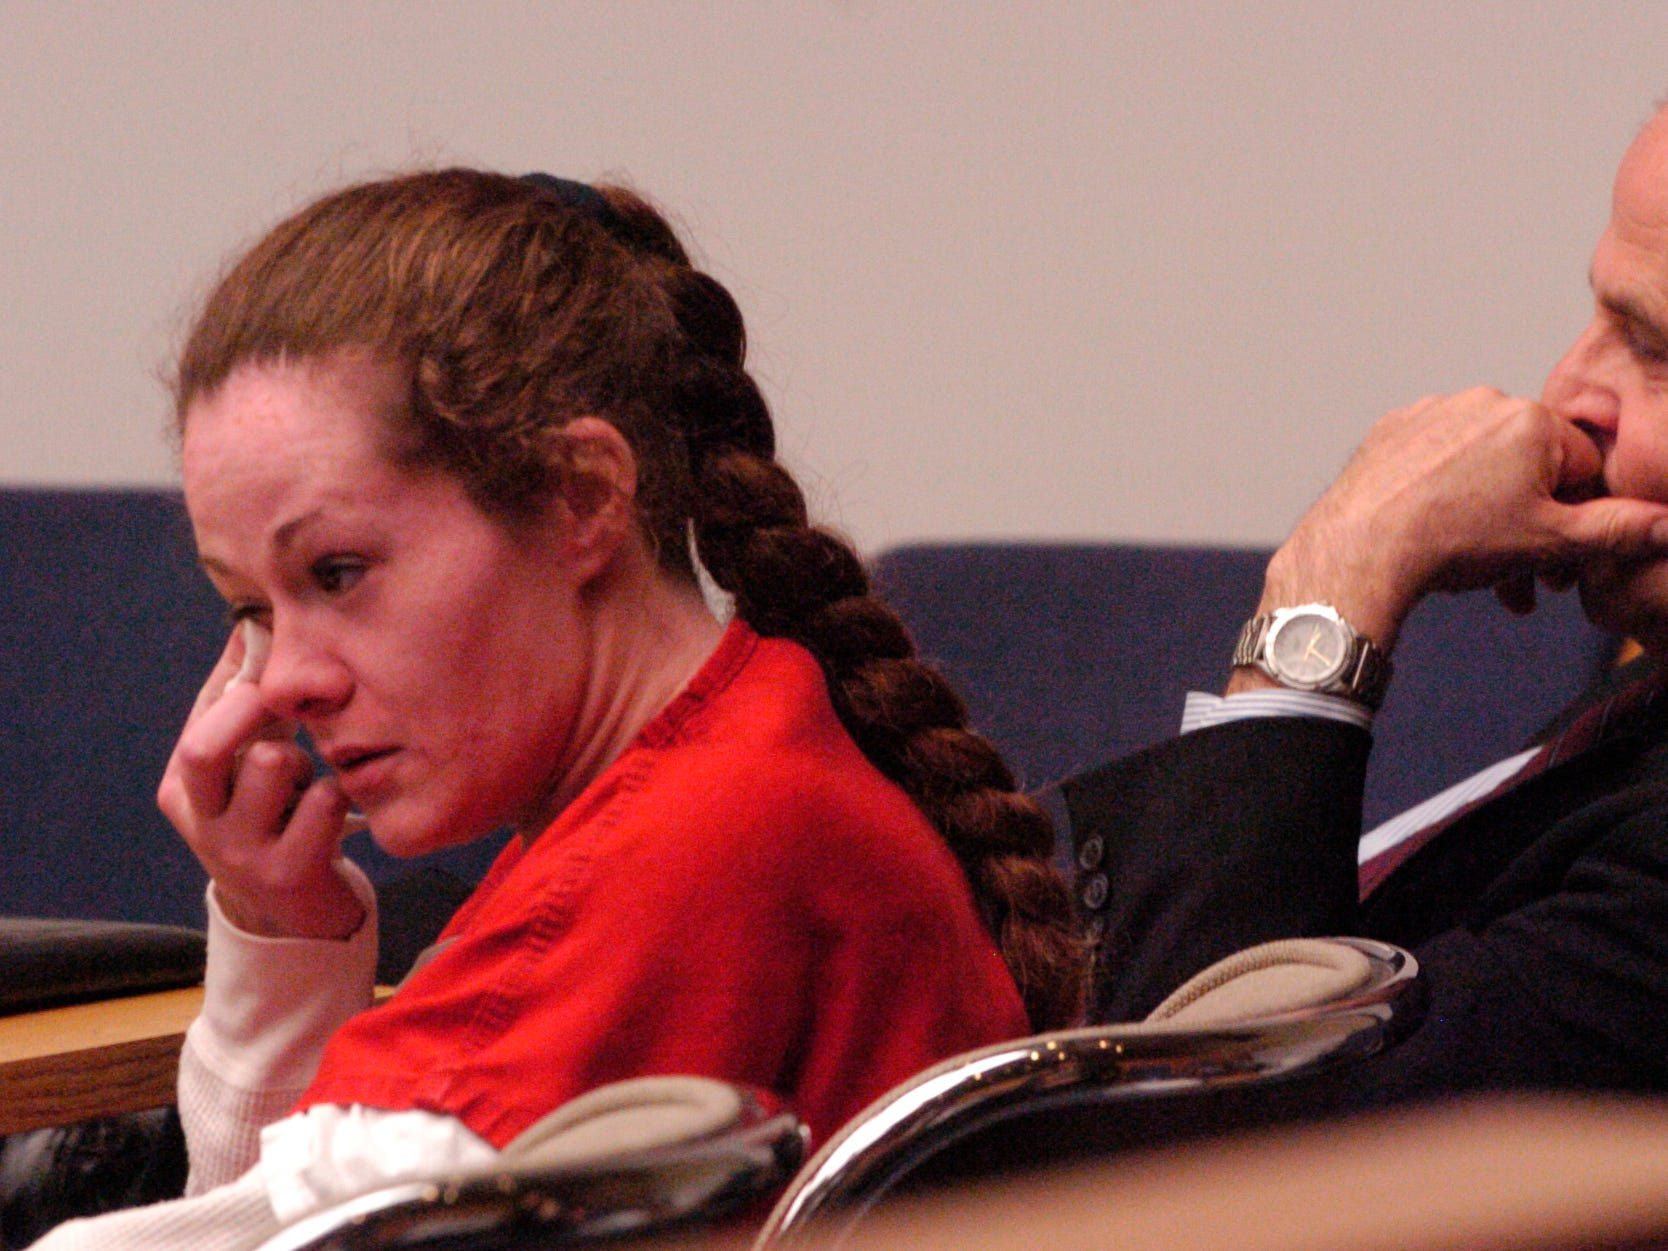 Christa Gail Pike broke down in tears on April 10, 2008 as she listened to herself confess to killing Colleen Slemmer in 1995. Pike's lawyers played the tape of her confession to Knoxville Police Department Investigator Randy York claiming she was going through mood swings and a distraught emotional state at the time.